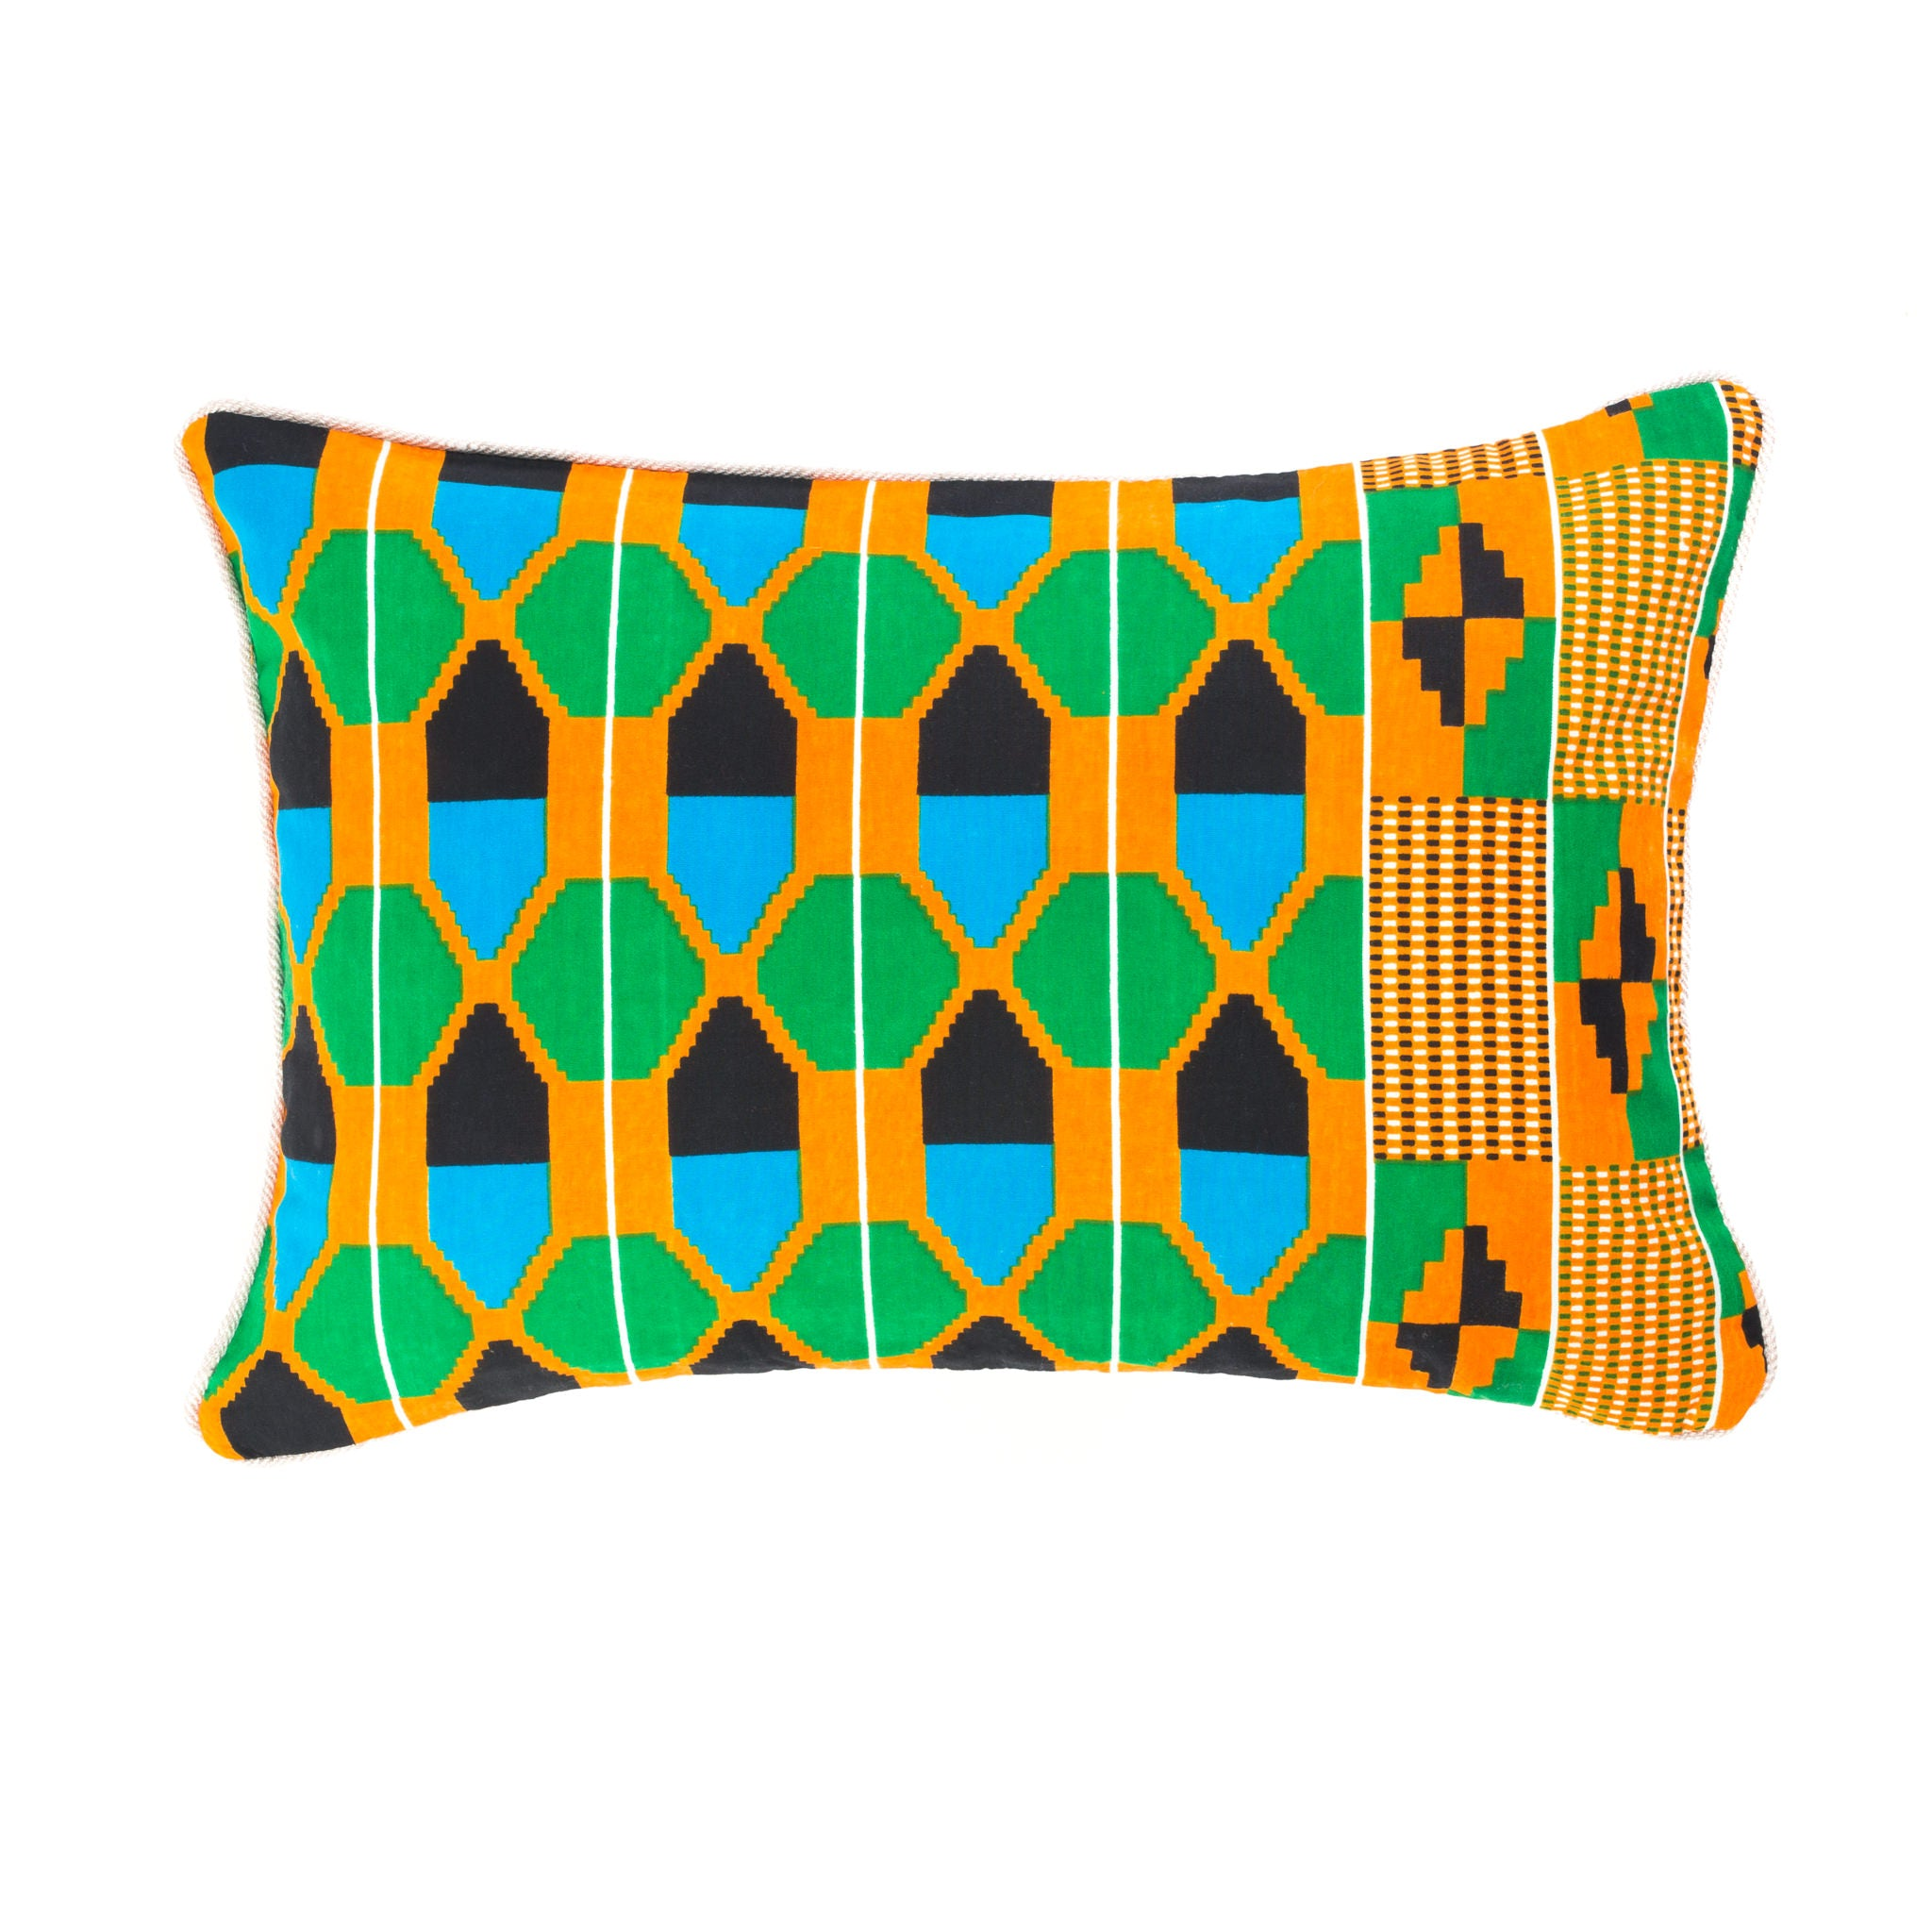 Kente/Ghana/Cotton/Scatter/Cushion/Pattern/Green/Blue/Black/Orange/